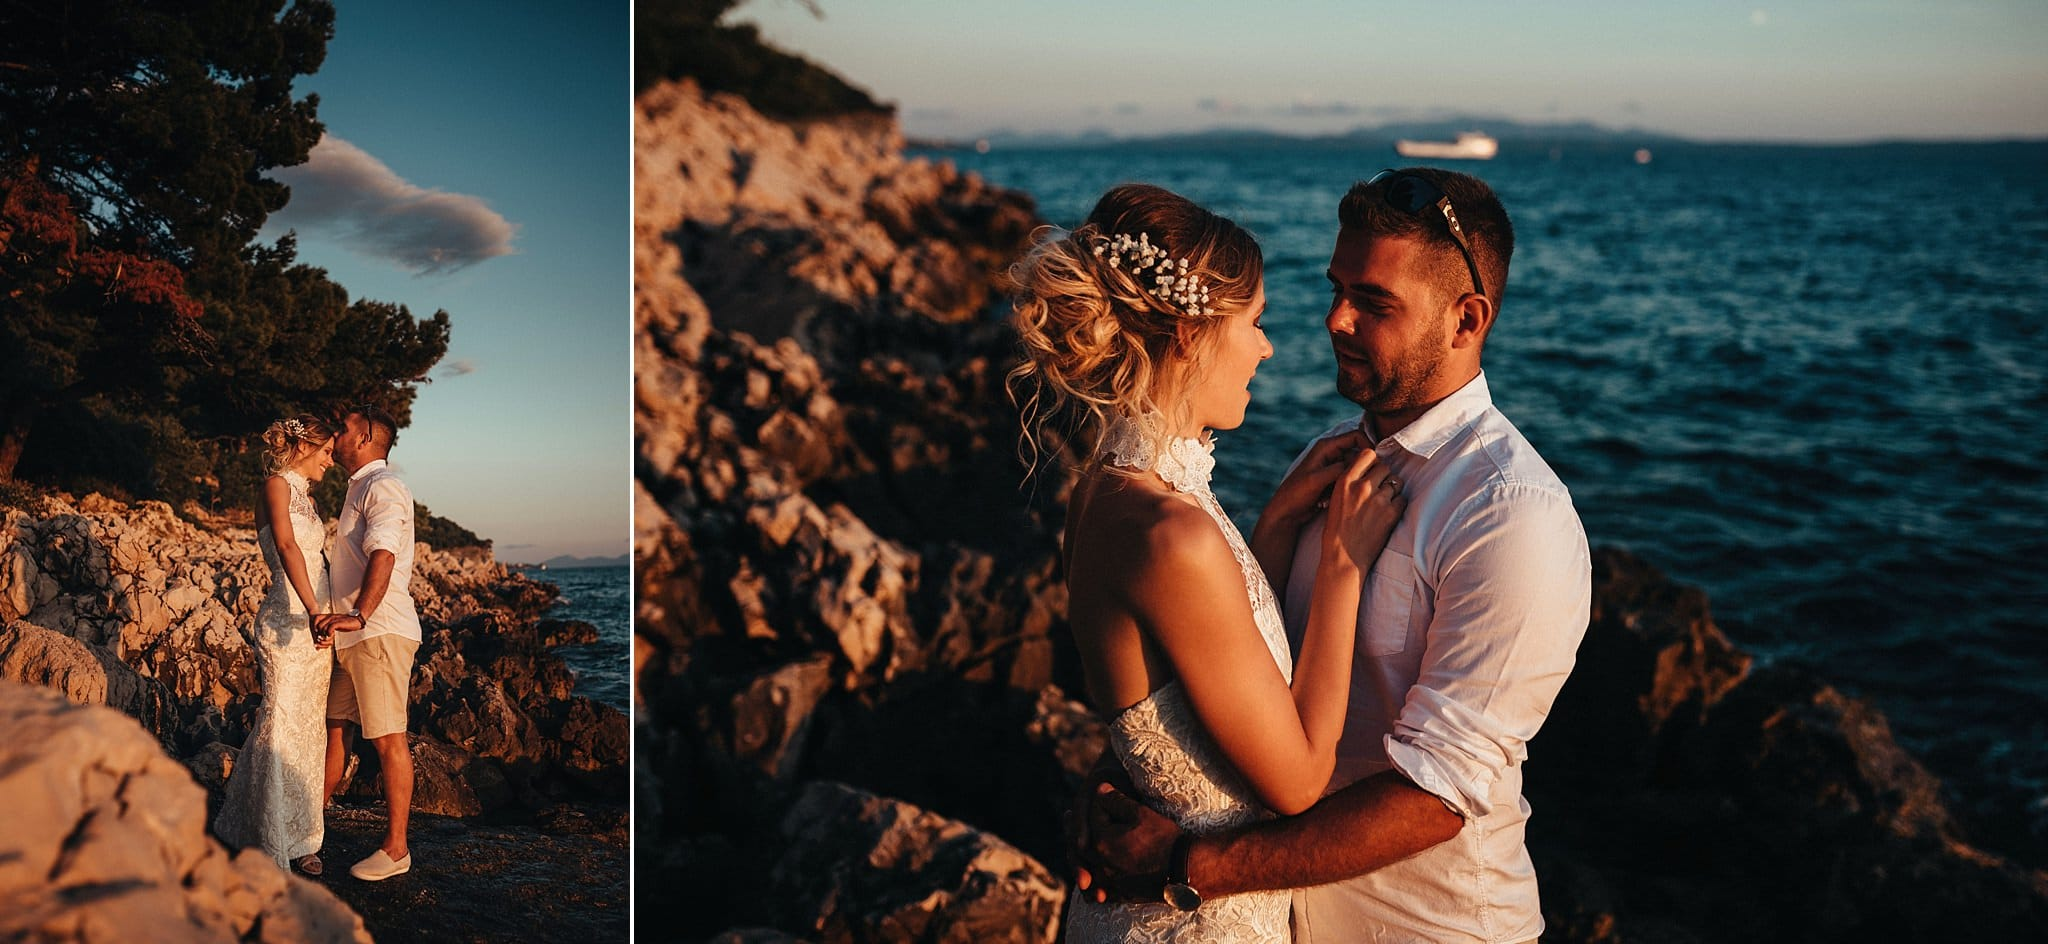 Wedding photographer Makarska